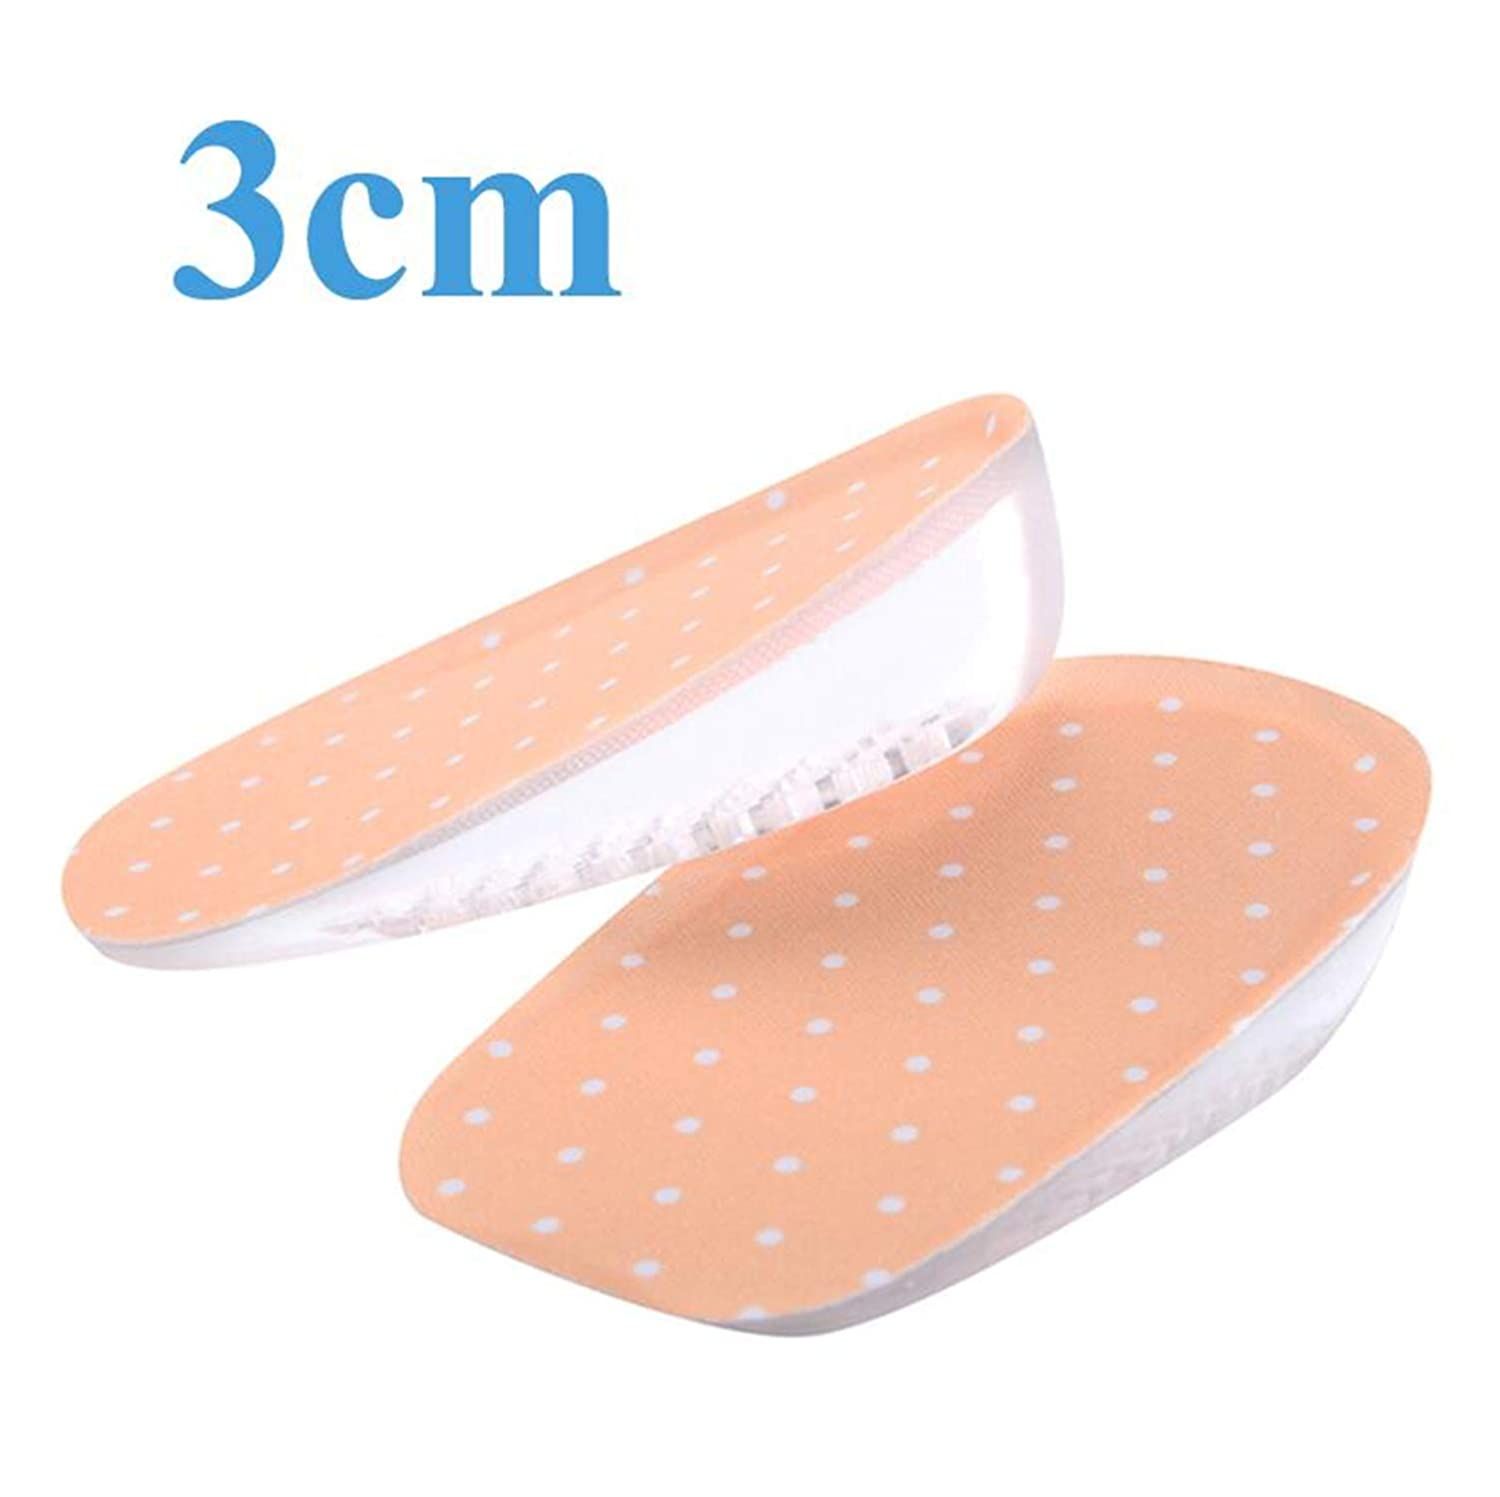 852b2f8c03c27 Amazon.com: Hulione Height Increase Half Shoes Pads for Men Women ...